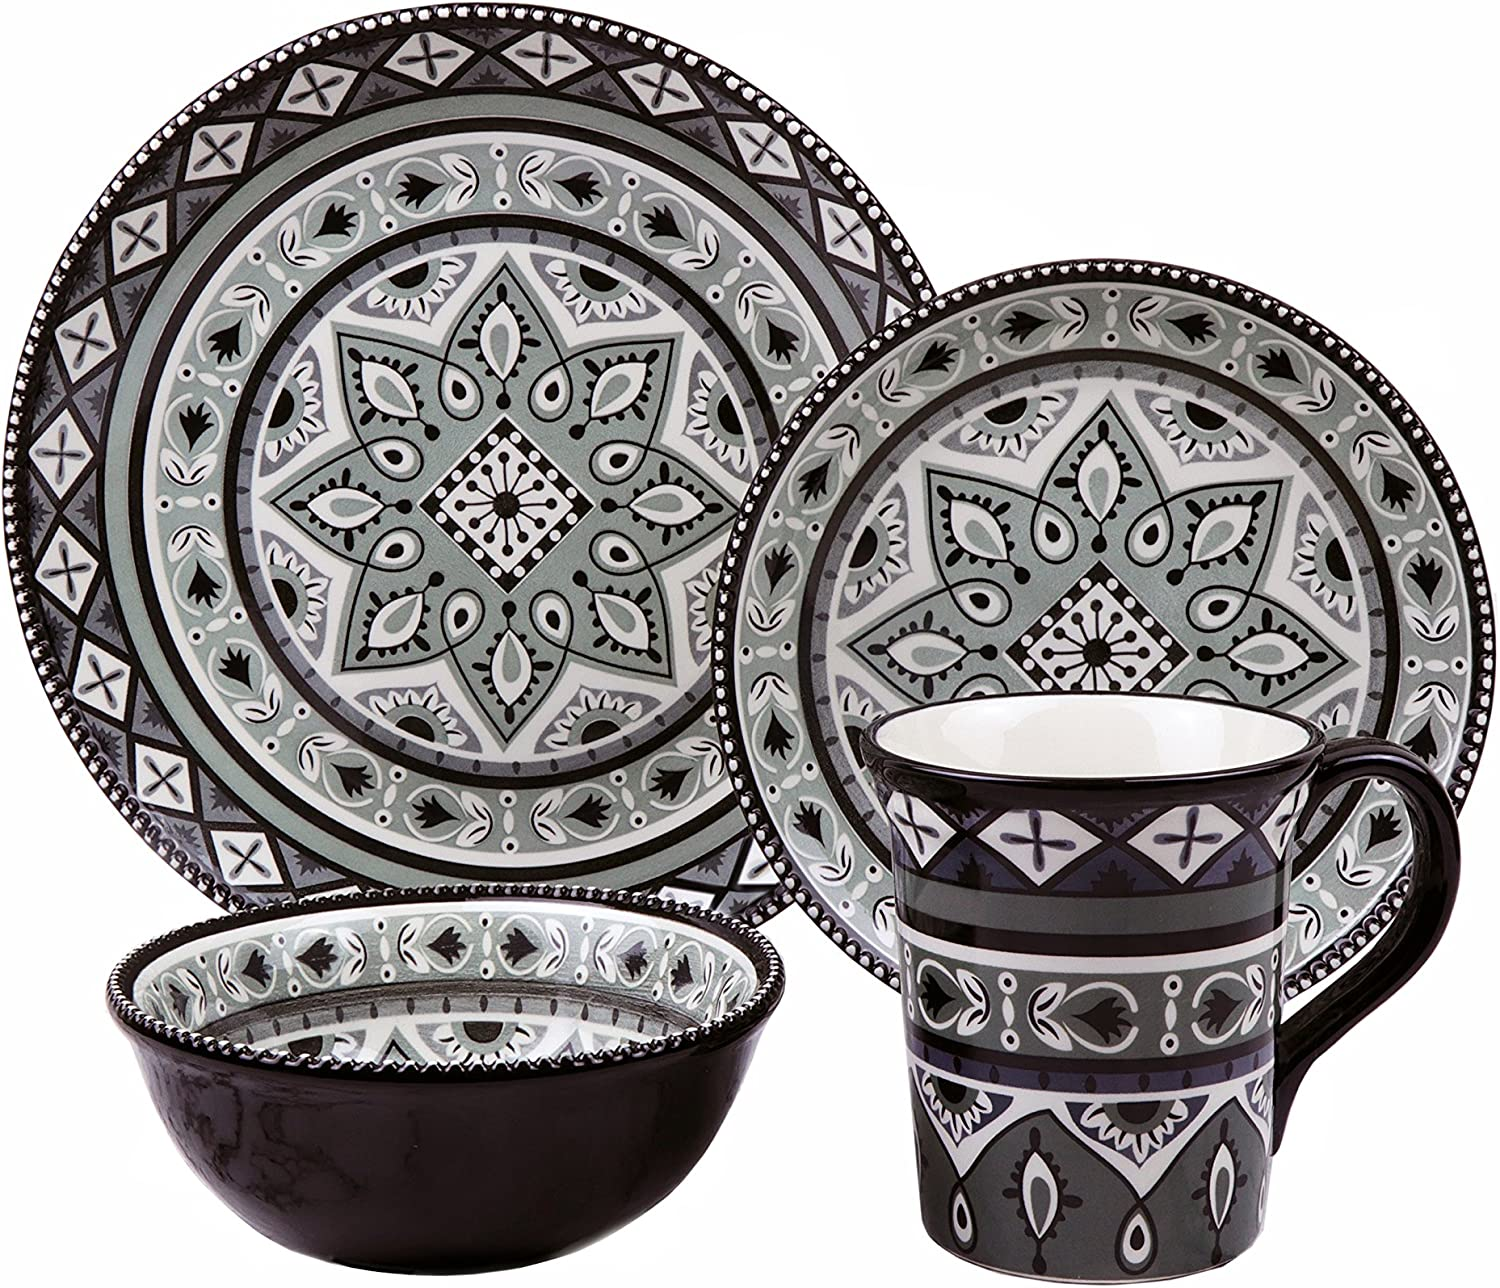 Lorren Home Trends LH512 Bimini Collection 16 Piece Black and Gray Beaded Stoneware Set By Lorren Home, One Size